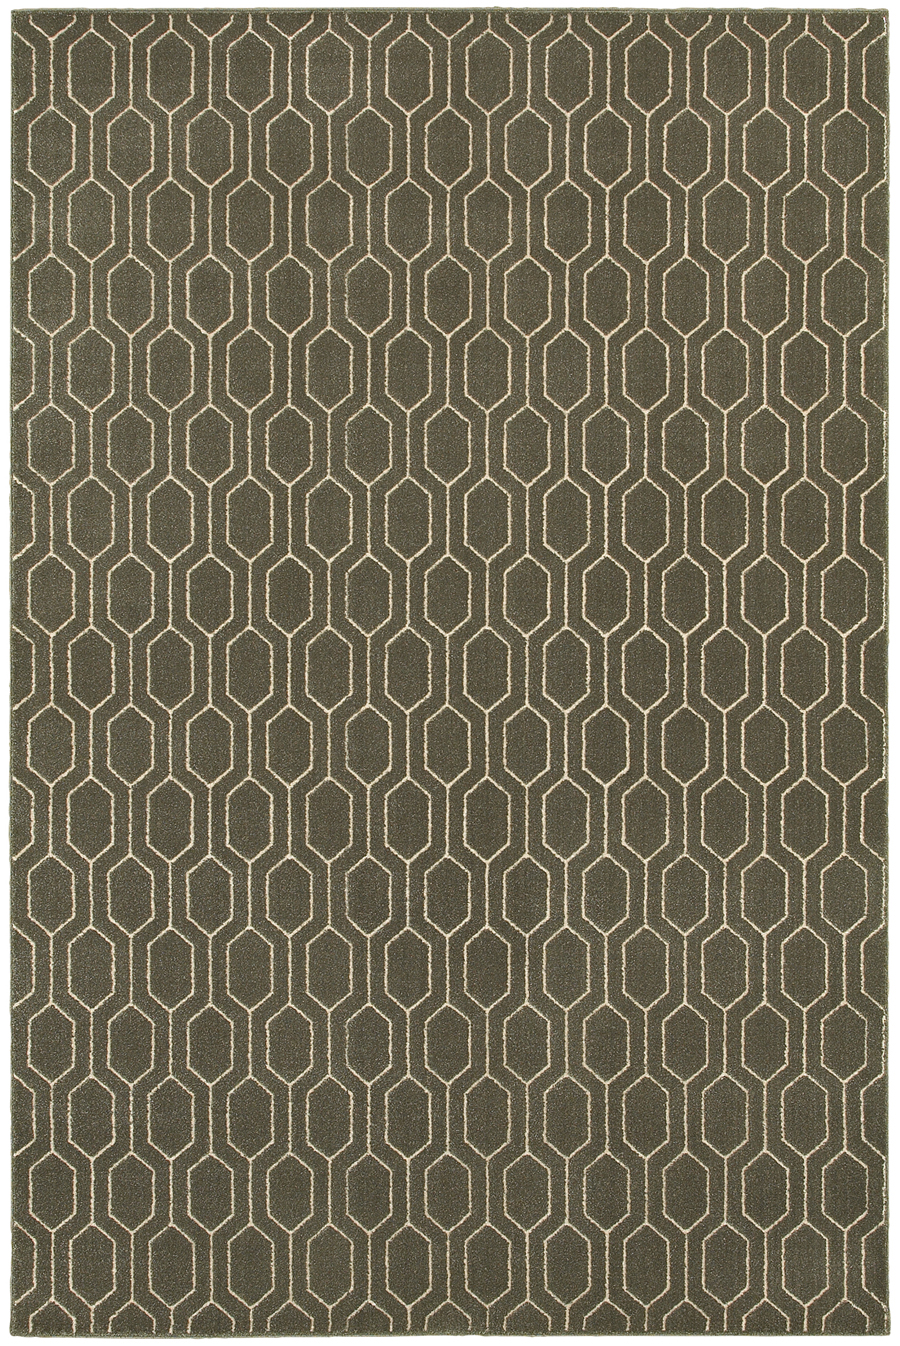 Oriental Weavers Sphinx Ellerson 8021D Rug